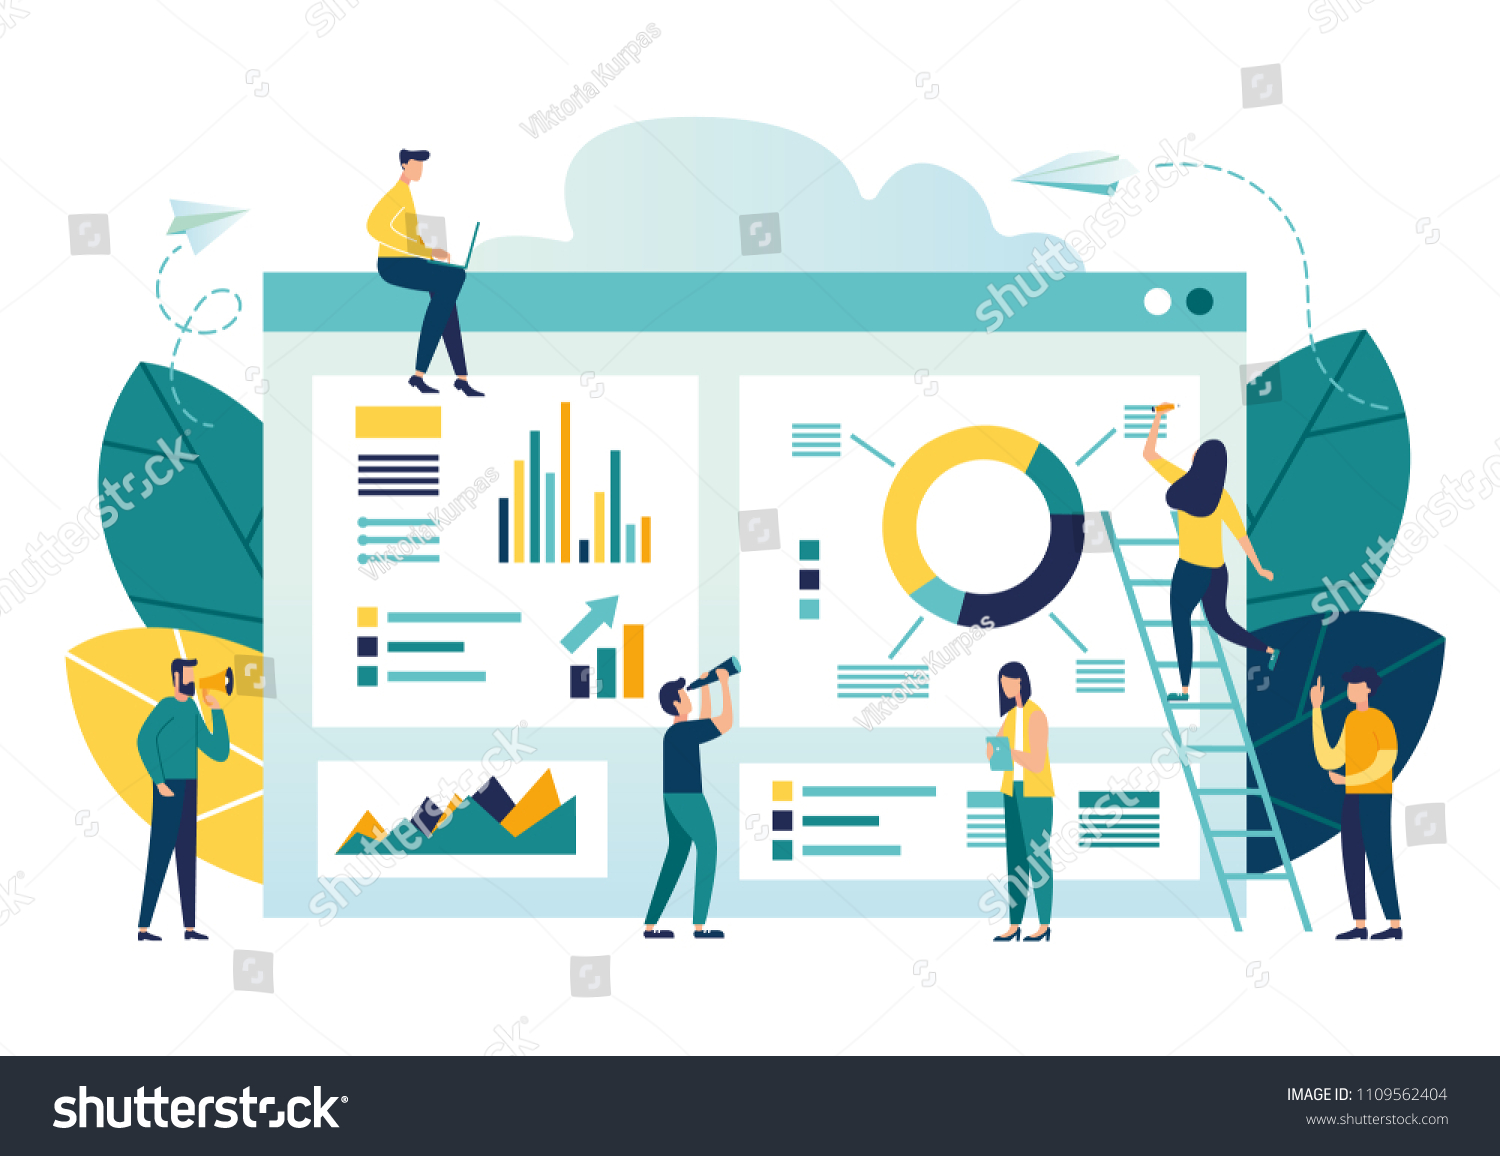 vector illustration of business, office workers are studying the infographic, the analysis of the evolutionary scale #1109562404